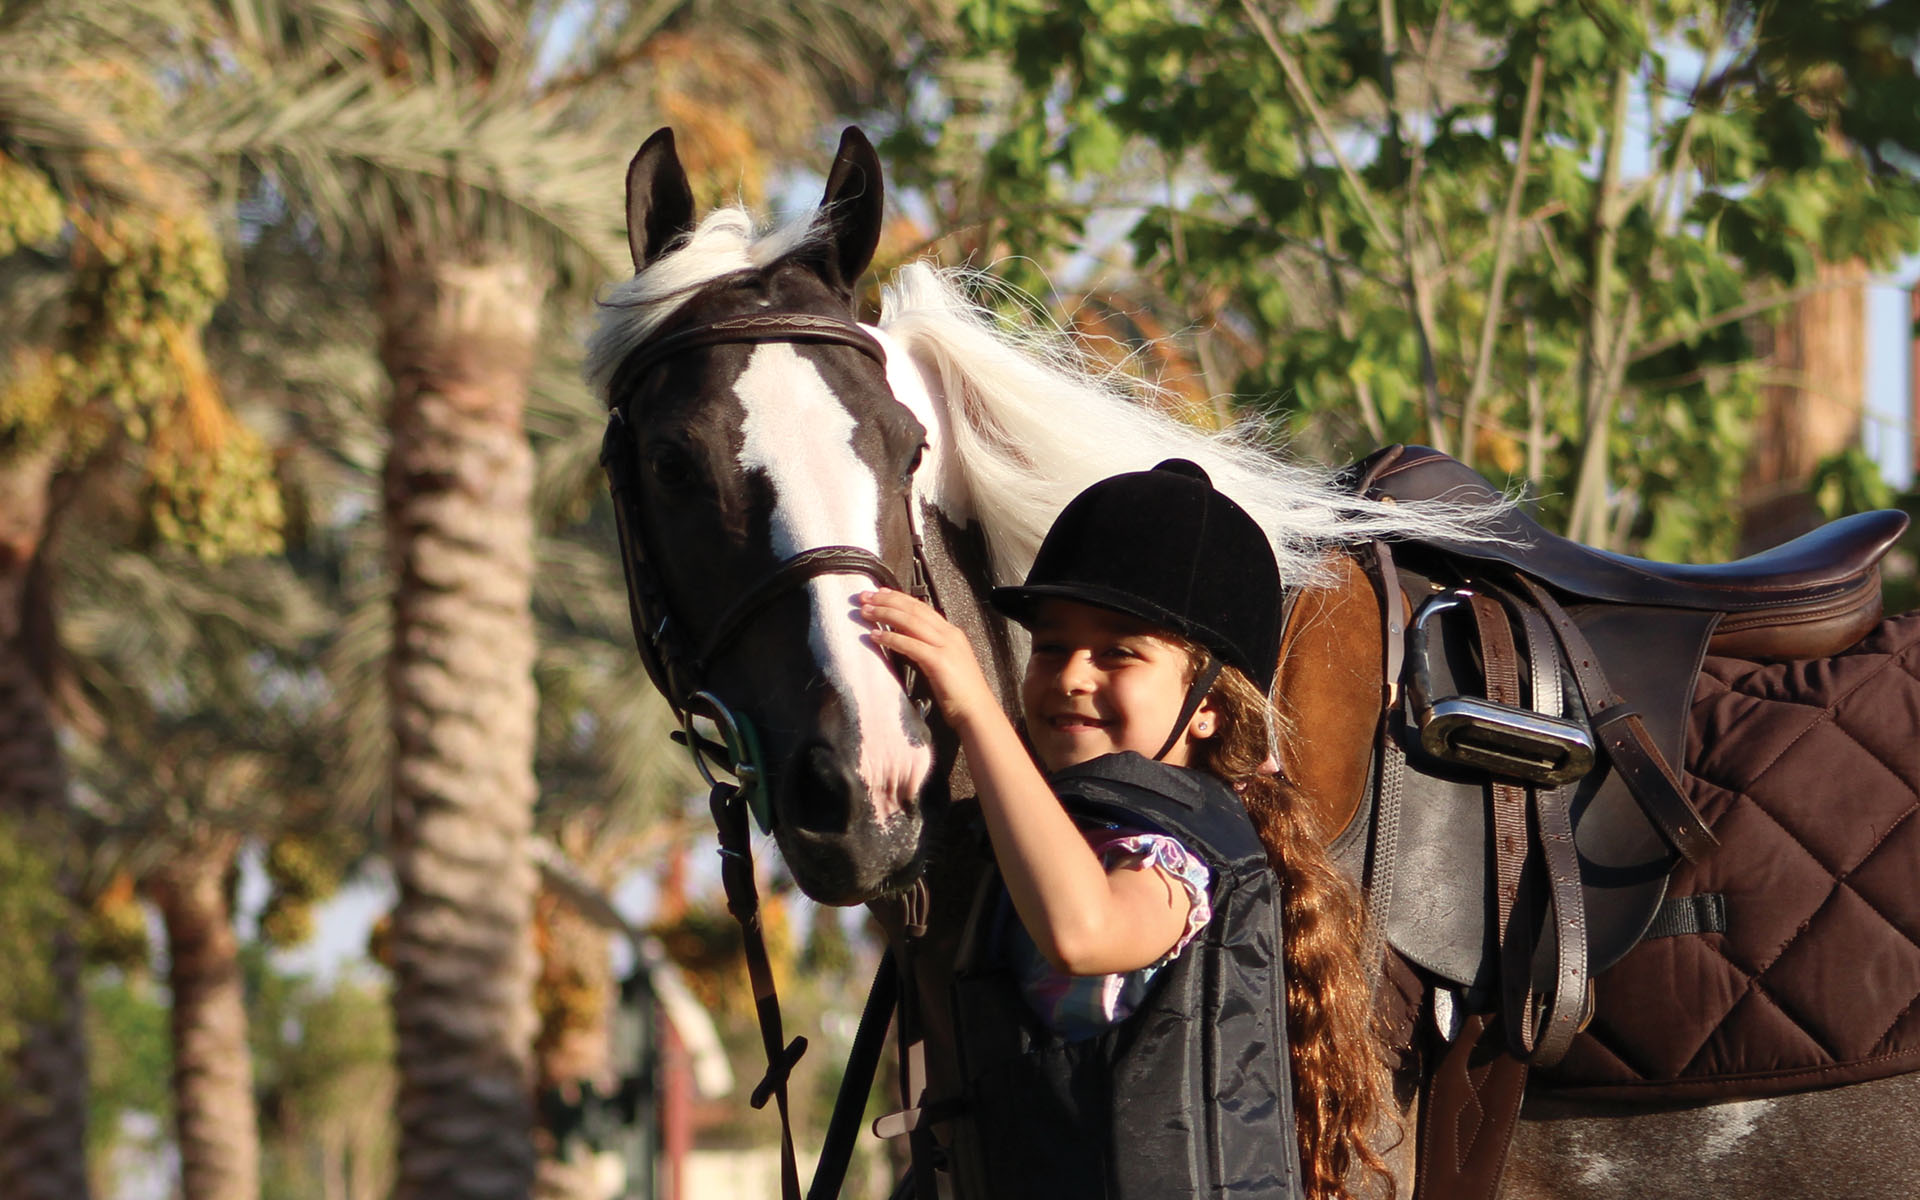 Ruya Horse Riding Center - Sheik Zayed - 6th of October